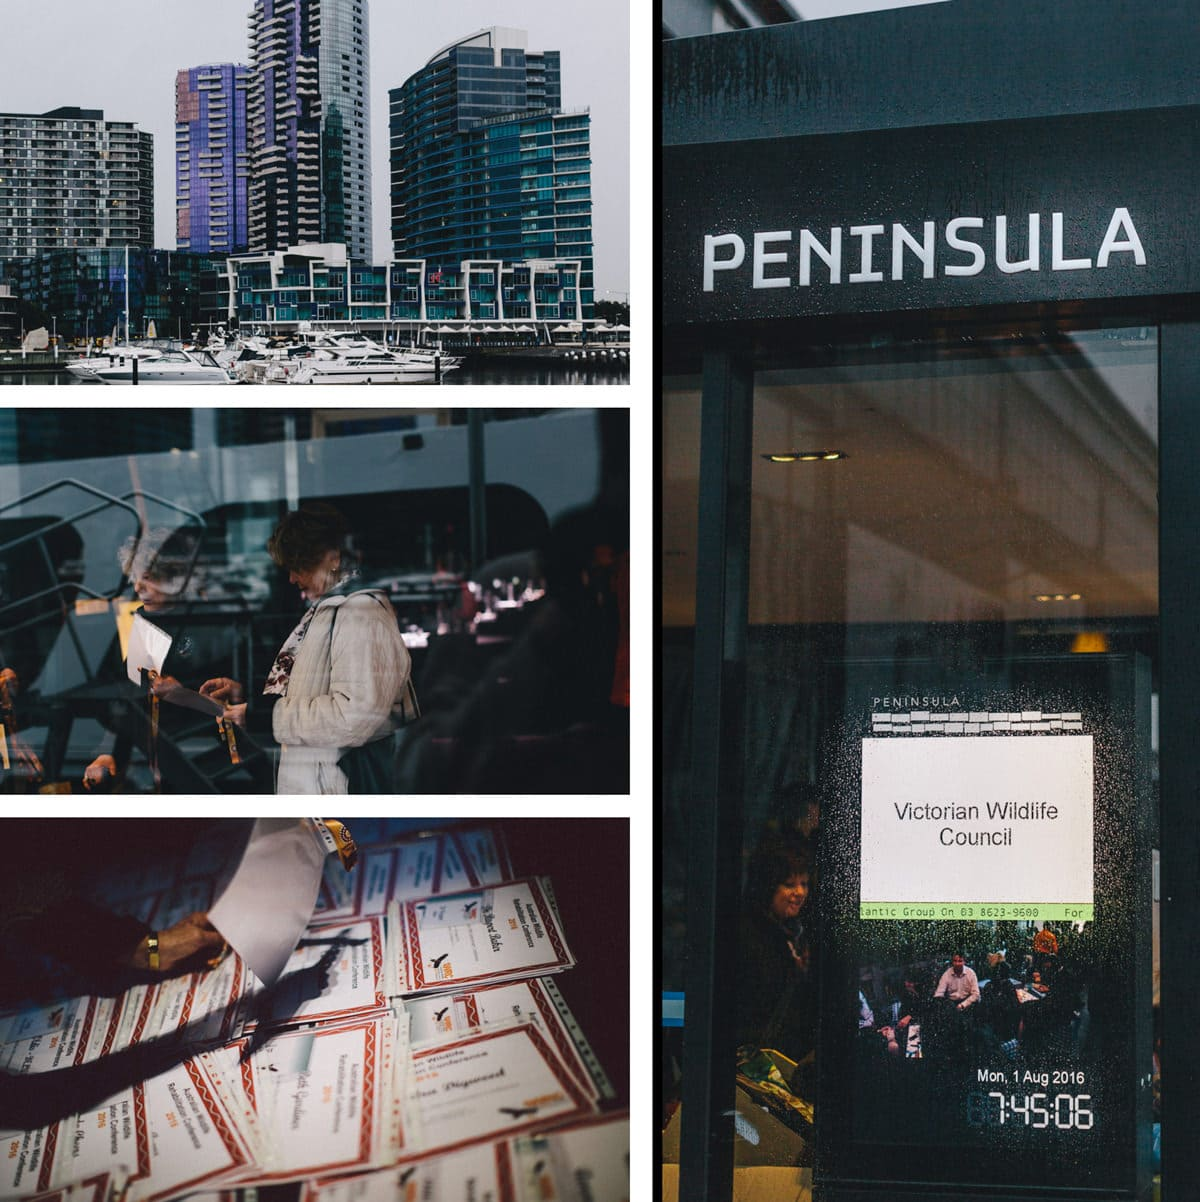 showtime event - melbourne photographer captures docklands conference